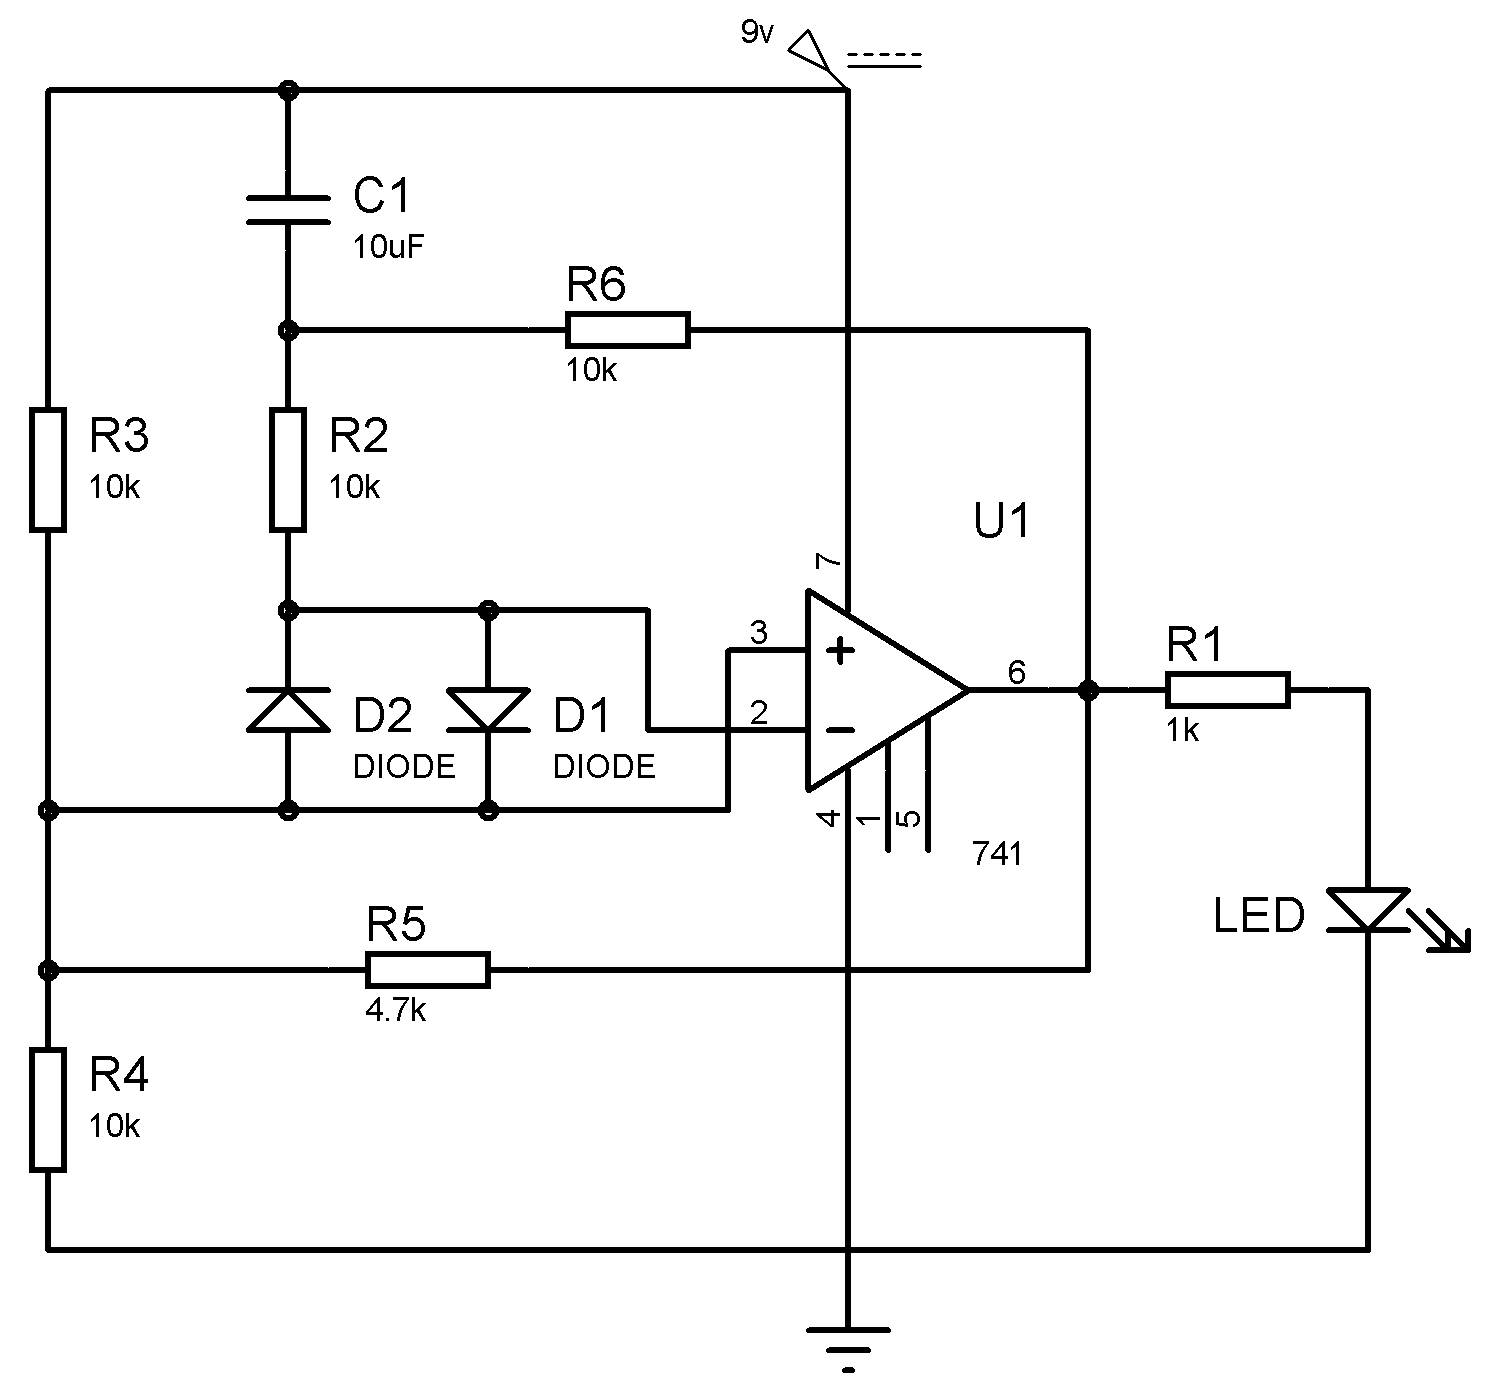 Op Amp Ic Lm741 Tester Circuit Diagram Small Projects Electronic Opamp